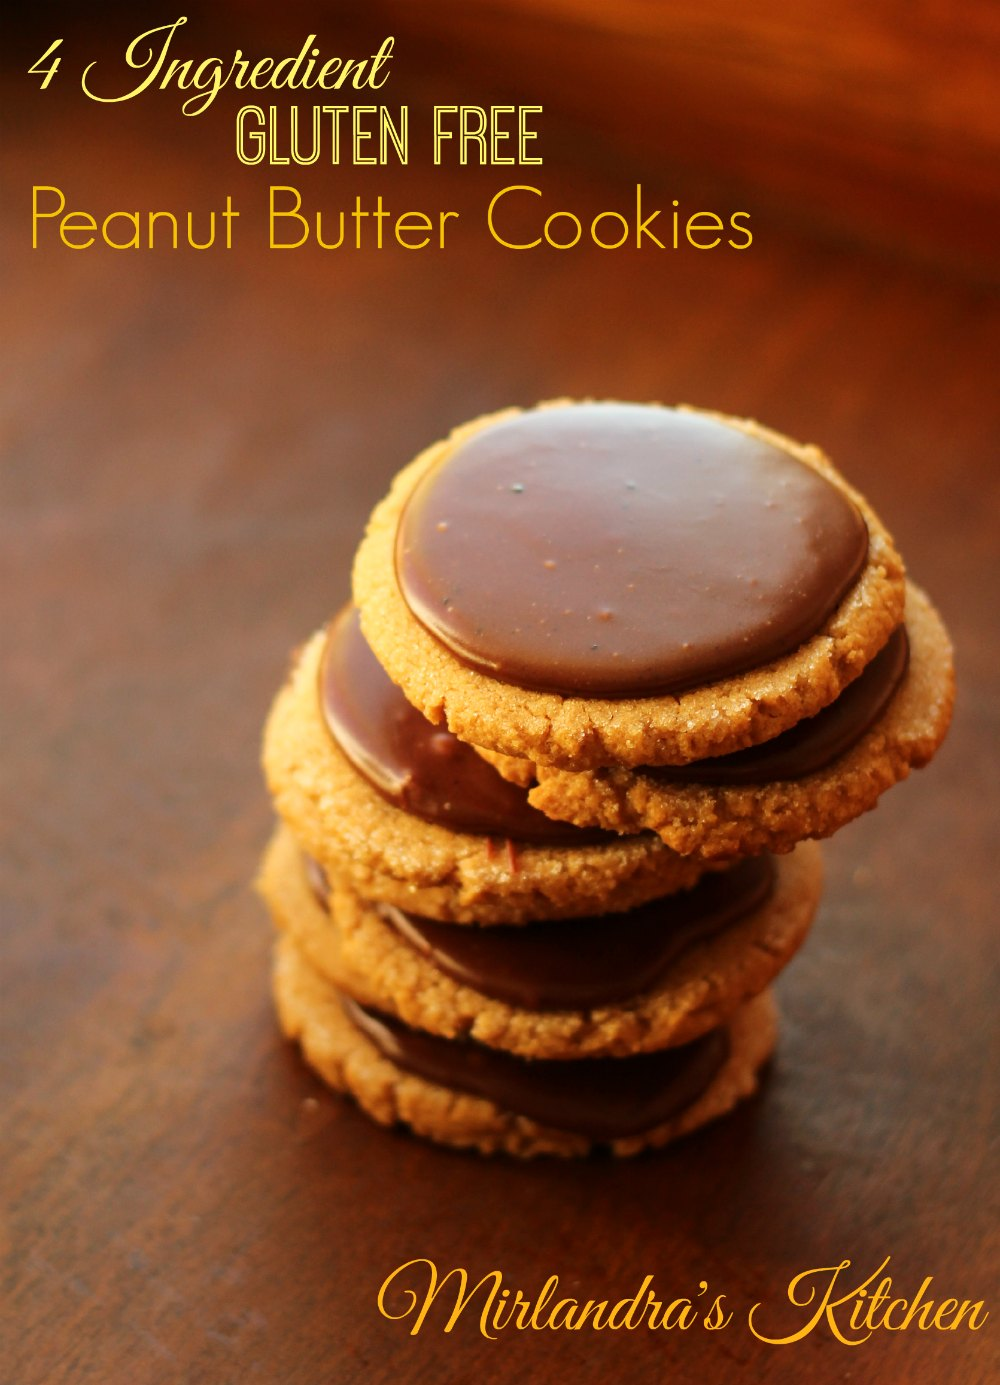 These gluten free peanut butter cookies call for just 4 ingredients and you can't tell they are GF. Add the amazing chocolate frosting for something extra.